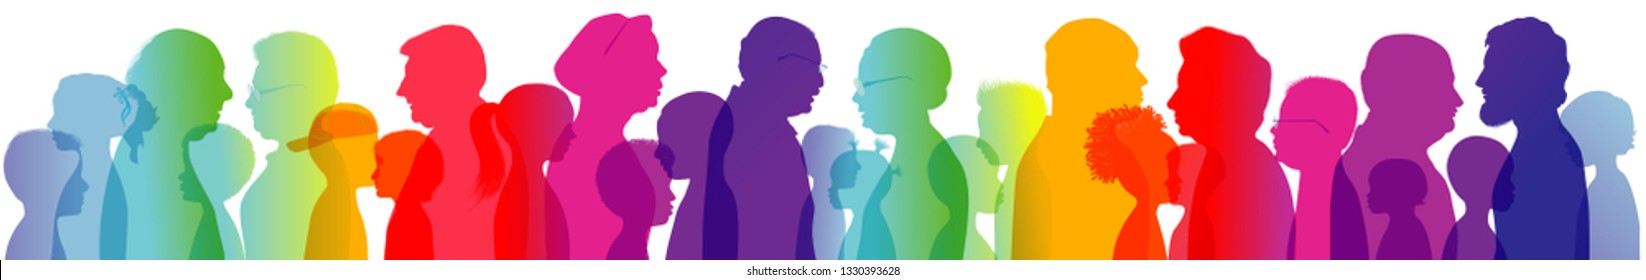 Profile silhouette with rainbow colors with group of grandparents and grandchildren. Dialogue or conversation between old people and children. Multiple exposure